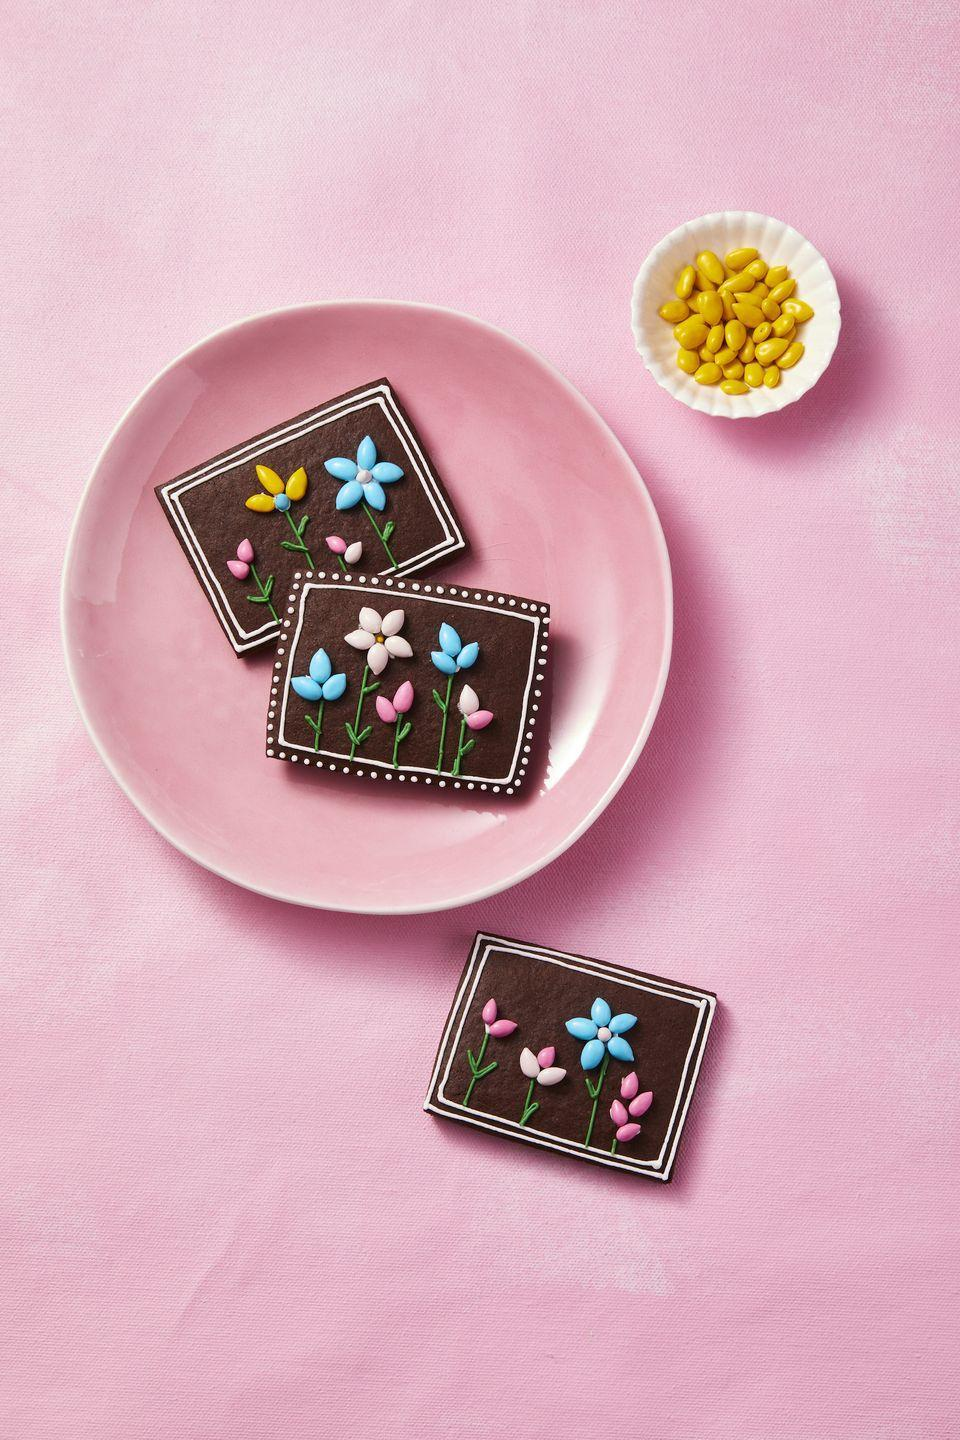 """<p>These chocolatey treats are as pretty as a picture! Oh, and you only need seven ingredients to make them.</p><p><a href=""""https://www.goodhousekeeping.com/food-recipes/a35396698/chocolate-sugar-cookies-recipe/"""" rel=""""nofollow noopener"""" target=""""_blank"""" data-ylk=""""slk:Get the recipe for Chocolate Sugar Cookies »"""" class=""""link rapid-noclick-resp""""><em>Get the recipe for Chocolate Sugar Cookies »</em></a></p>"""